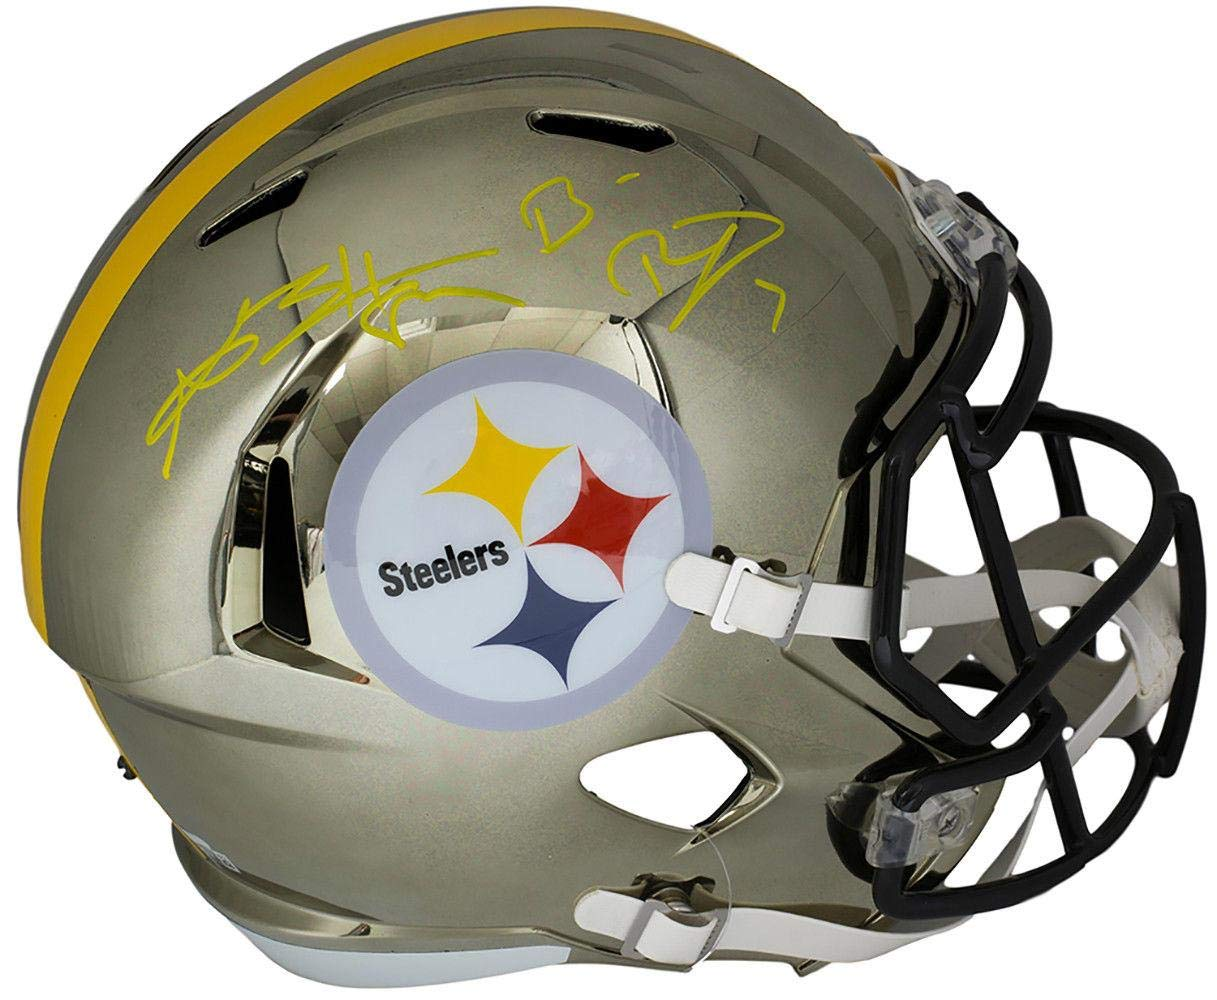 Antonio Brown Ben Roethlisberger Signed Steelers FS Chrome Helmet Fanatics BAS Fanatics Authentic Certified